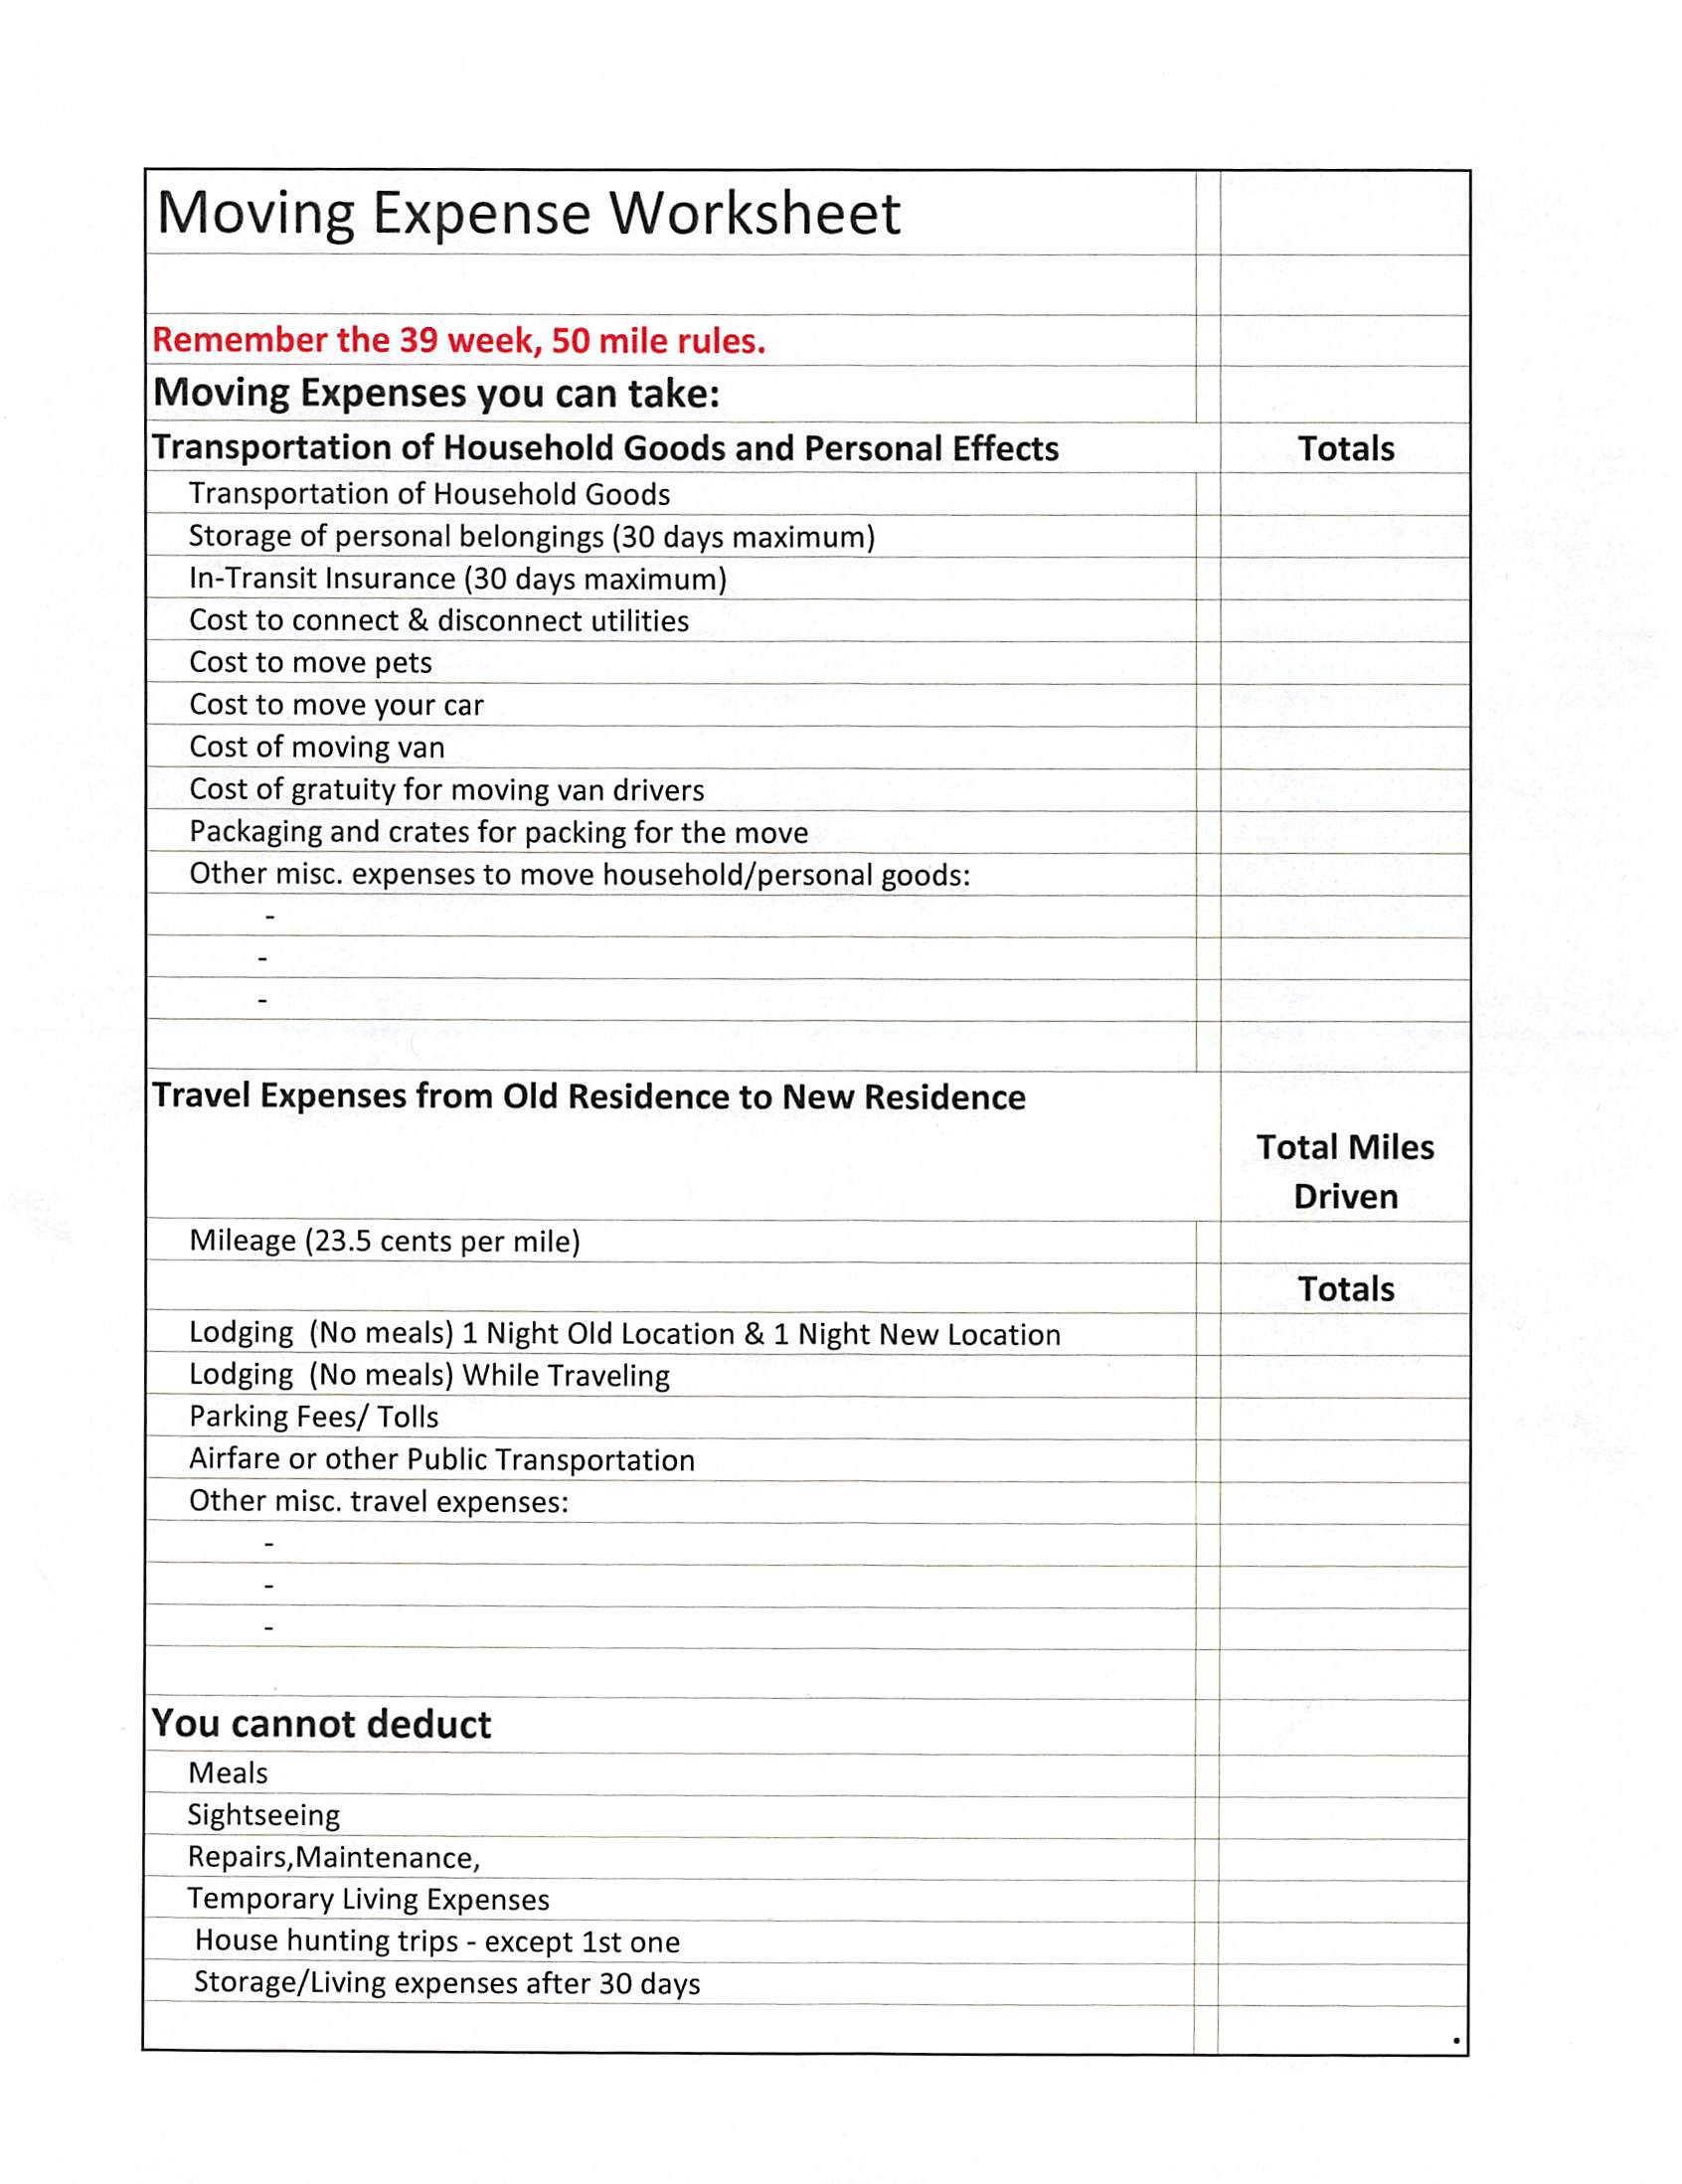 Worksheets Expense Worksheet moving expense worksheet tnt bookkeeping taxes 2015